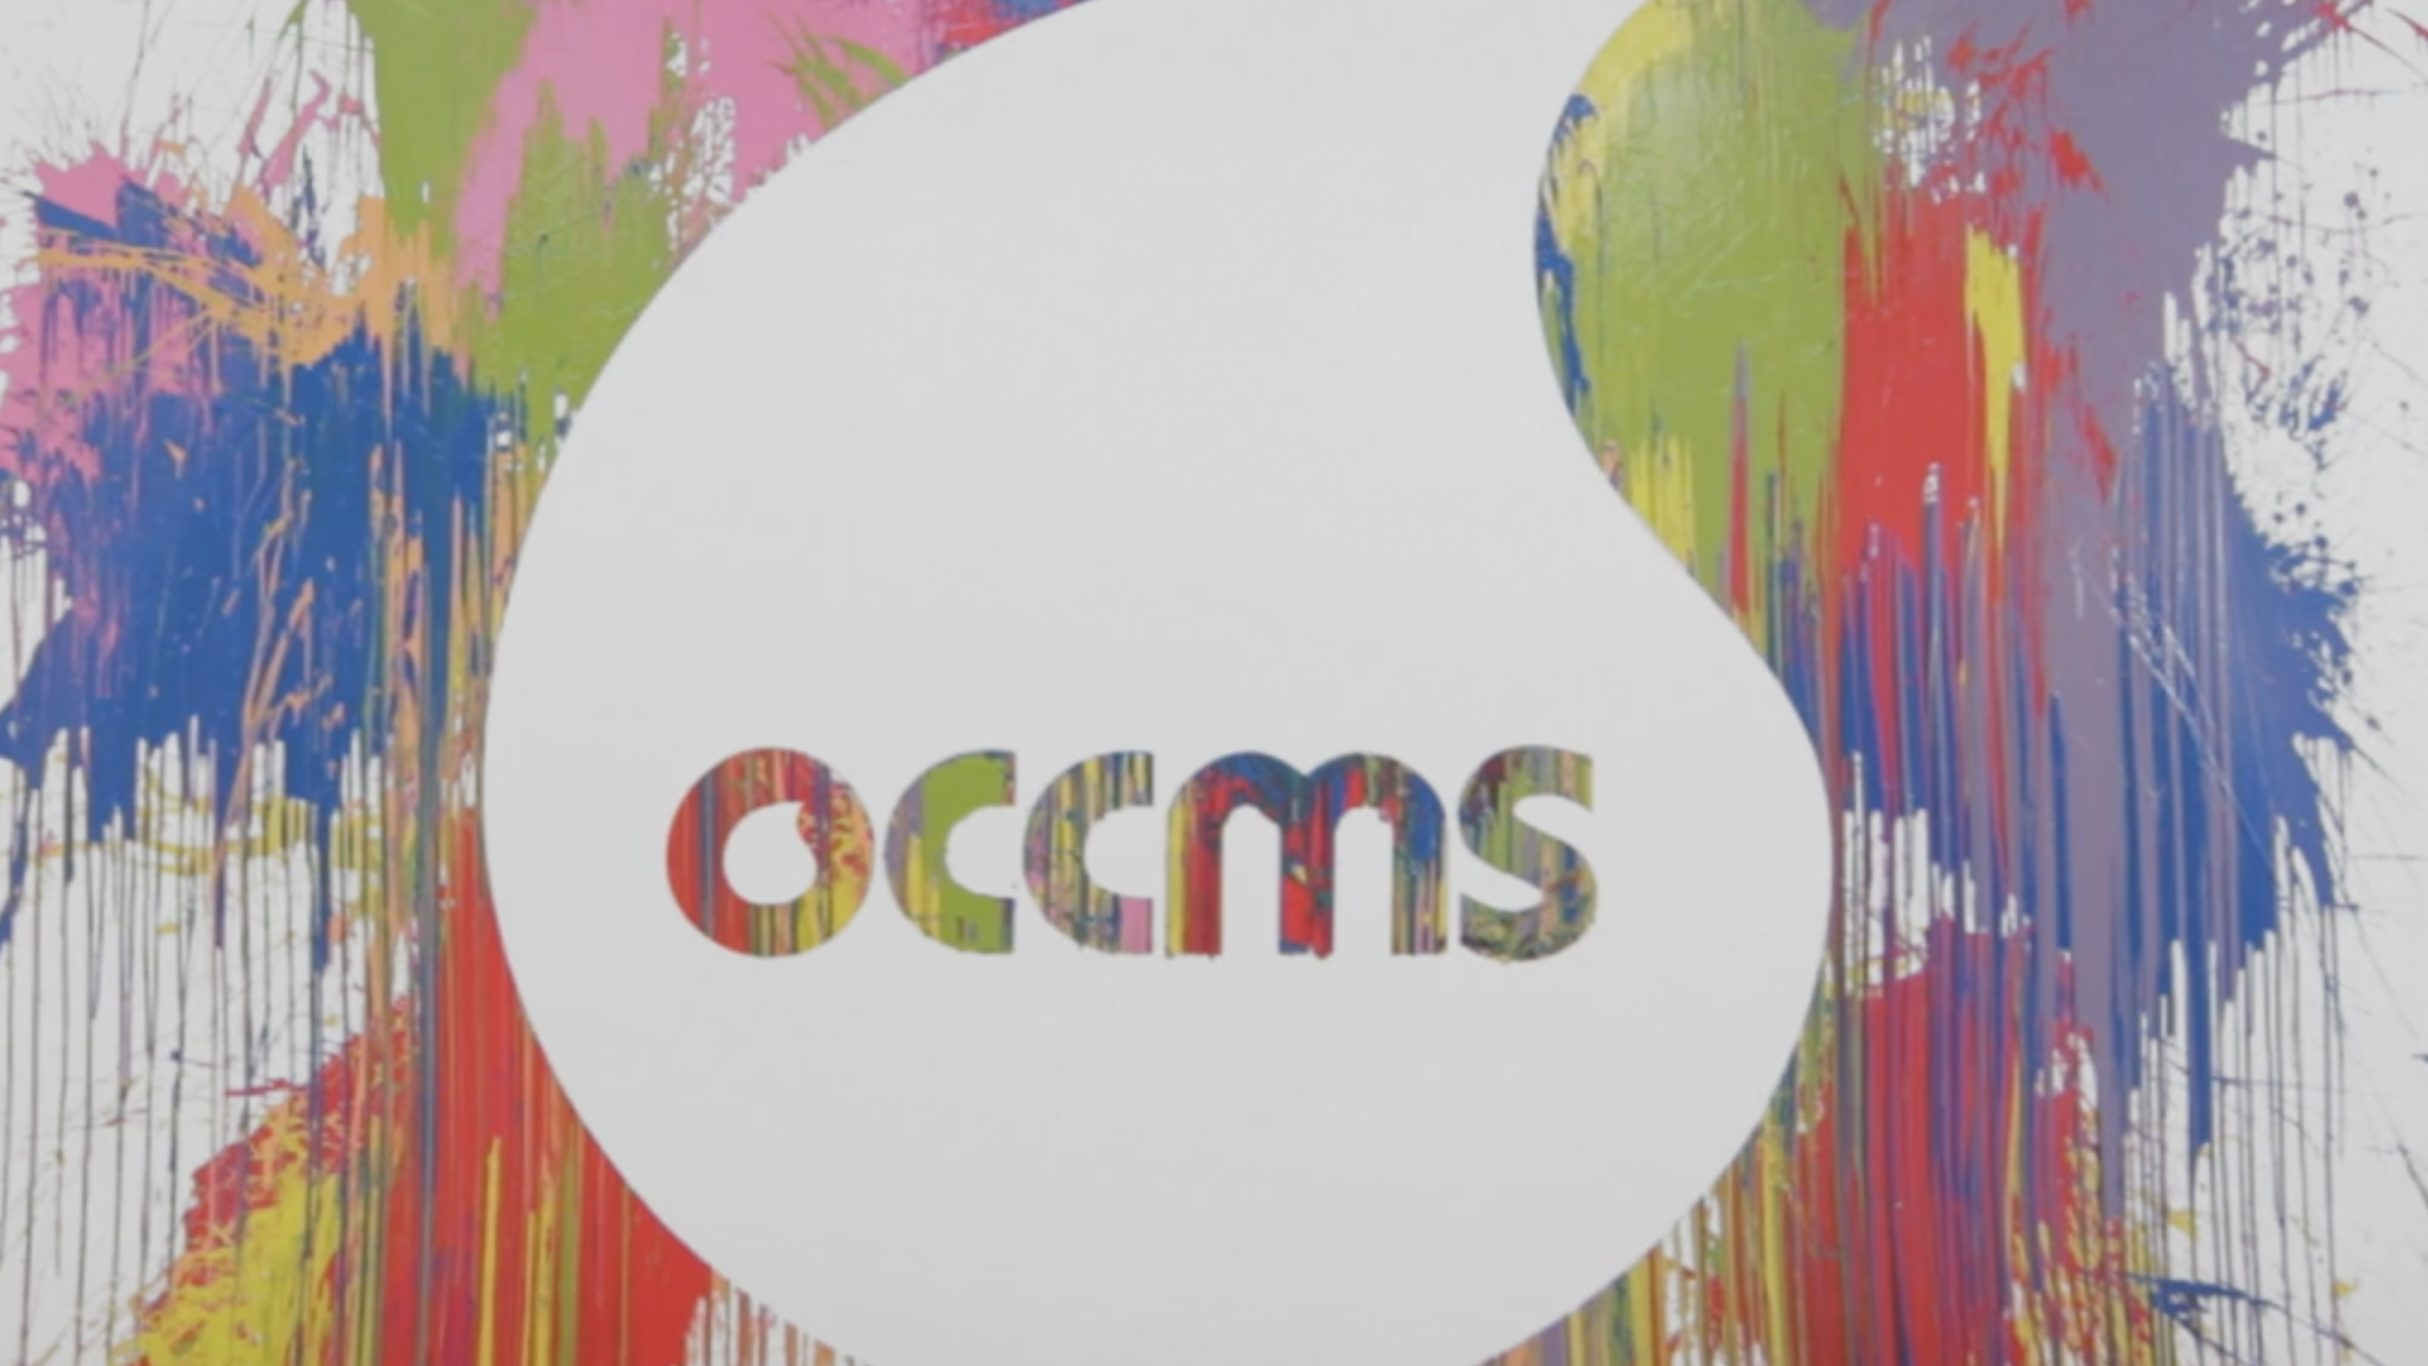 About OCCMS image